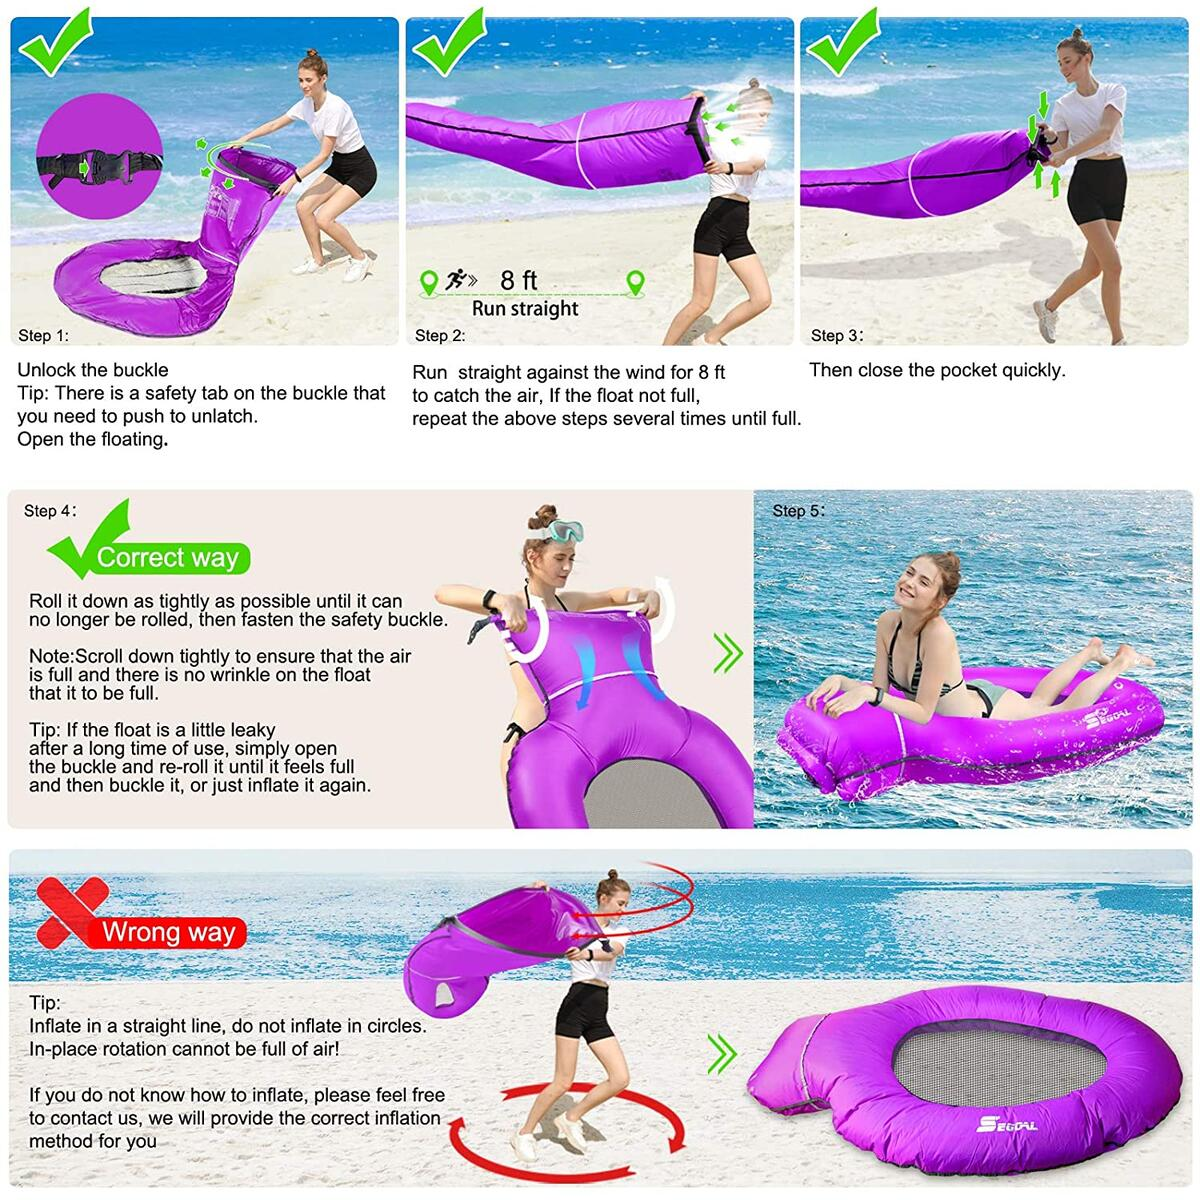 Pool Floats Inflatable Floating Lounger Chair Water Hammock Raft Swimming Ring Pool Toy Lightweight Single Layer Nylon Fabric No Pump Required